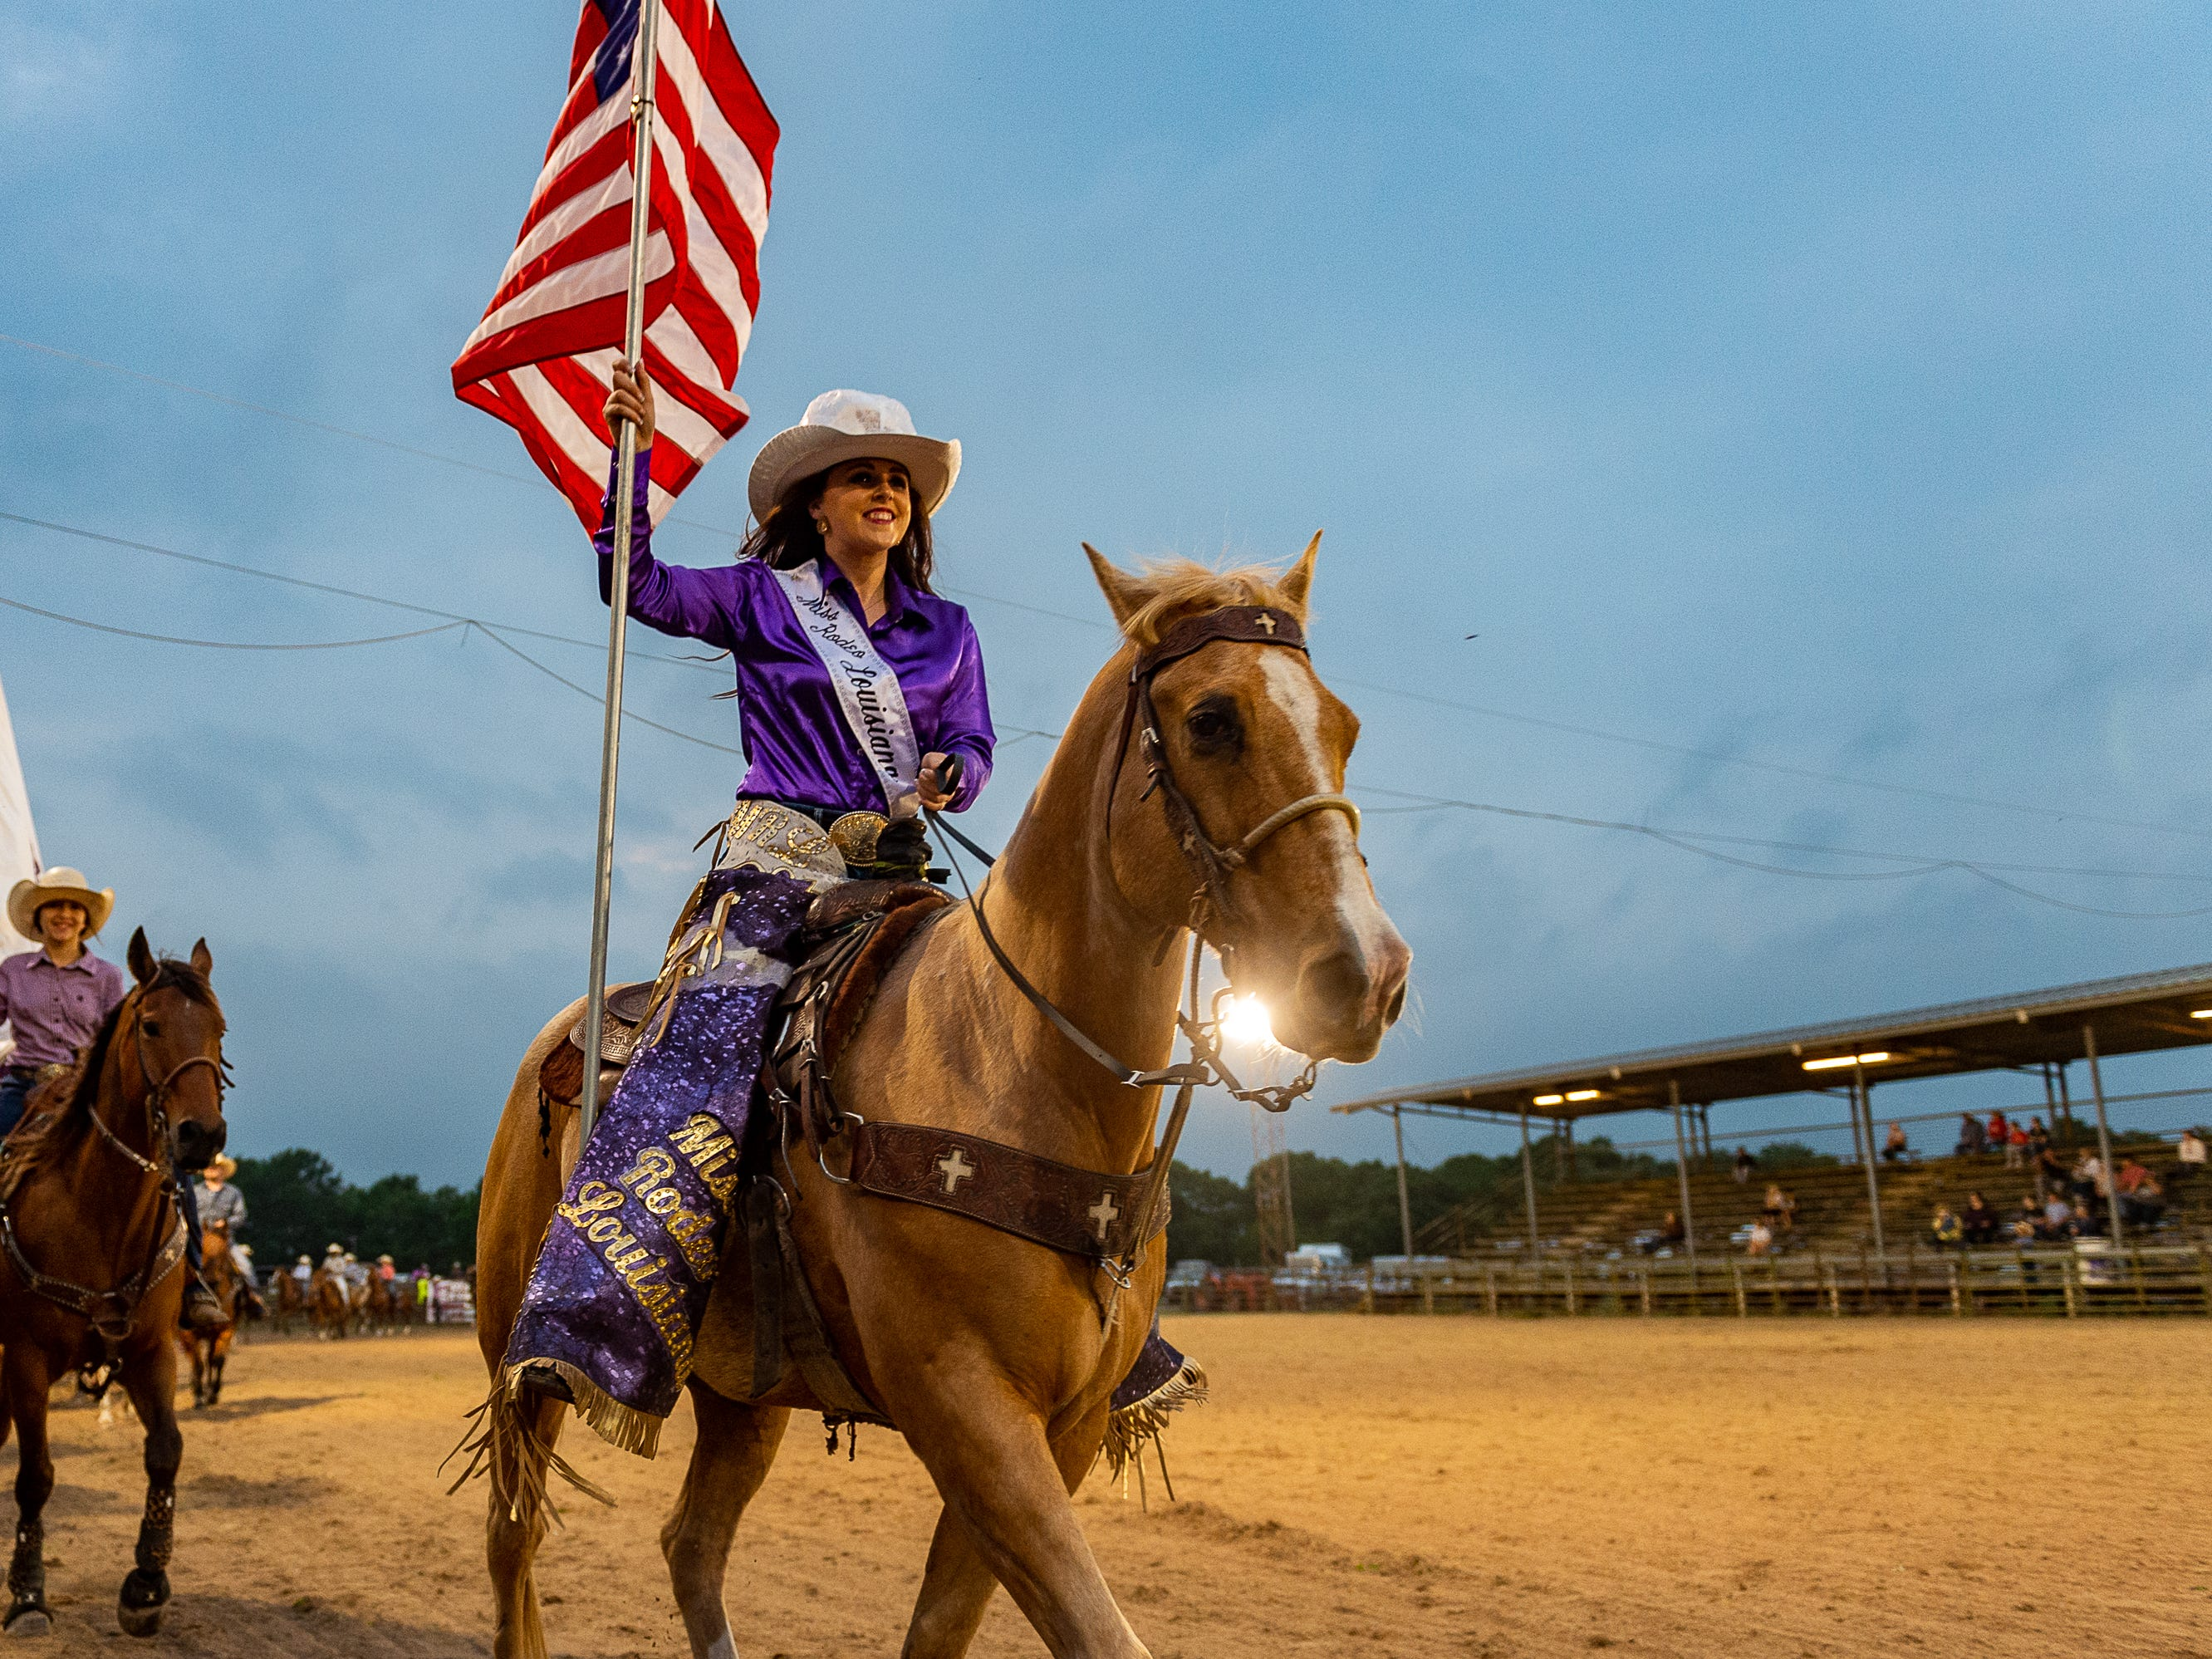 Miss Rodeo Louisiana Cheyenne Benoit carries the American flag as the Cajun Rodeo Association host the Cowboys Spring Stampede 19 Rodeo at Cowboys Arena in Scott, LA. Saturday, April 13, 2019.